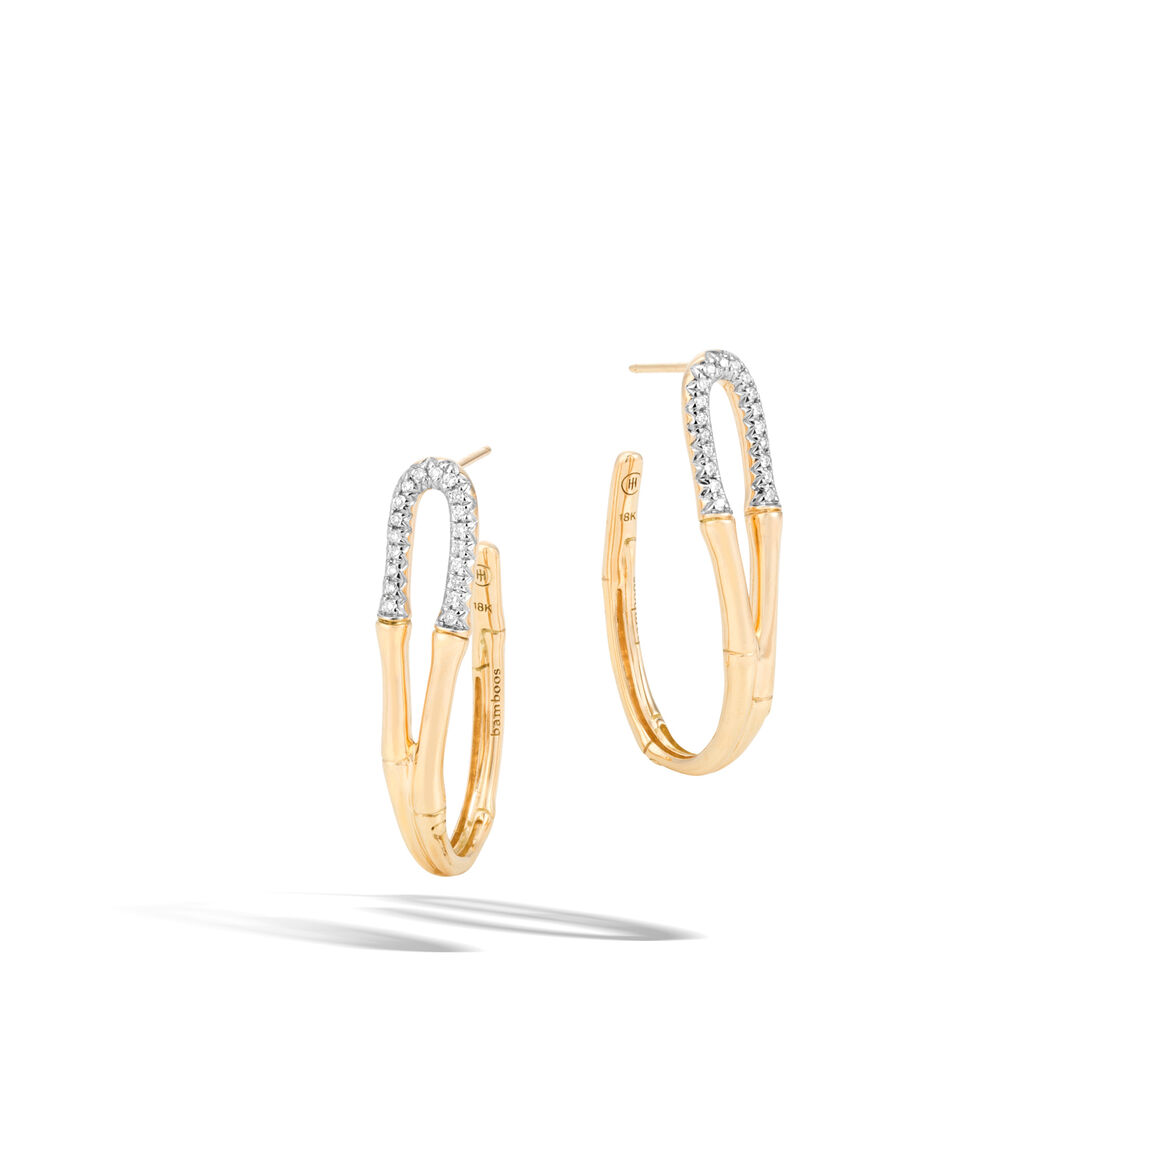 Bamboo Medium Hoop Earring in 18K Goldwith Diamonds